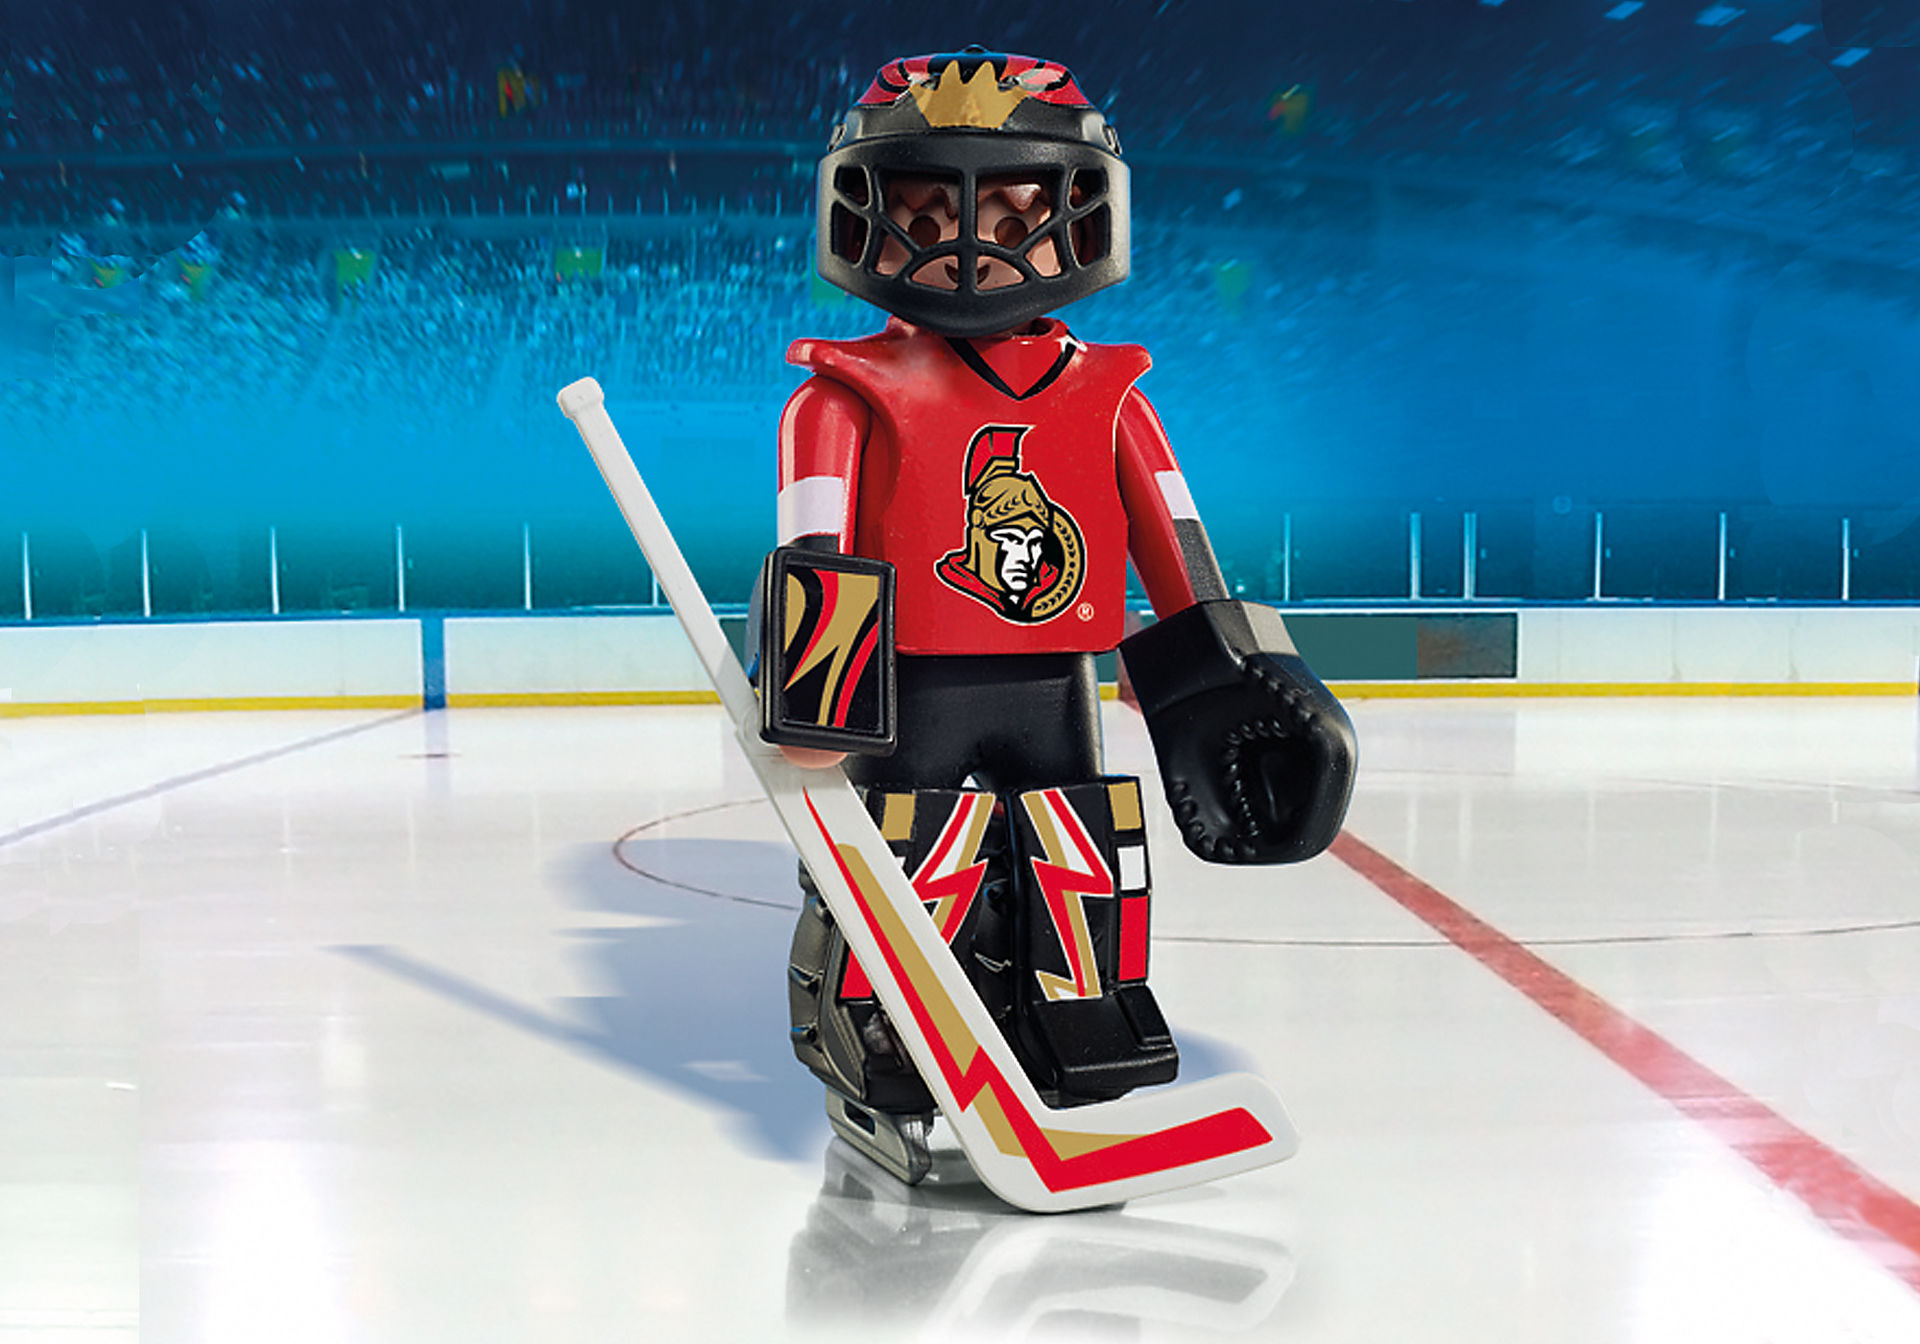 9018 NHL® Ottawa Senators® Goalie zoom image1